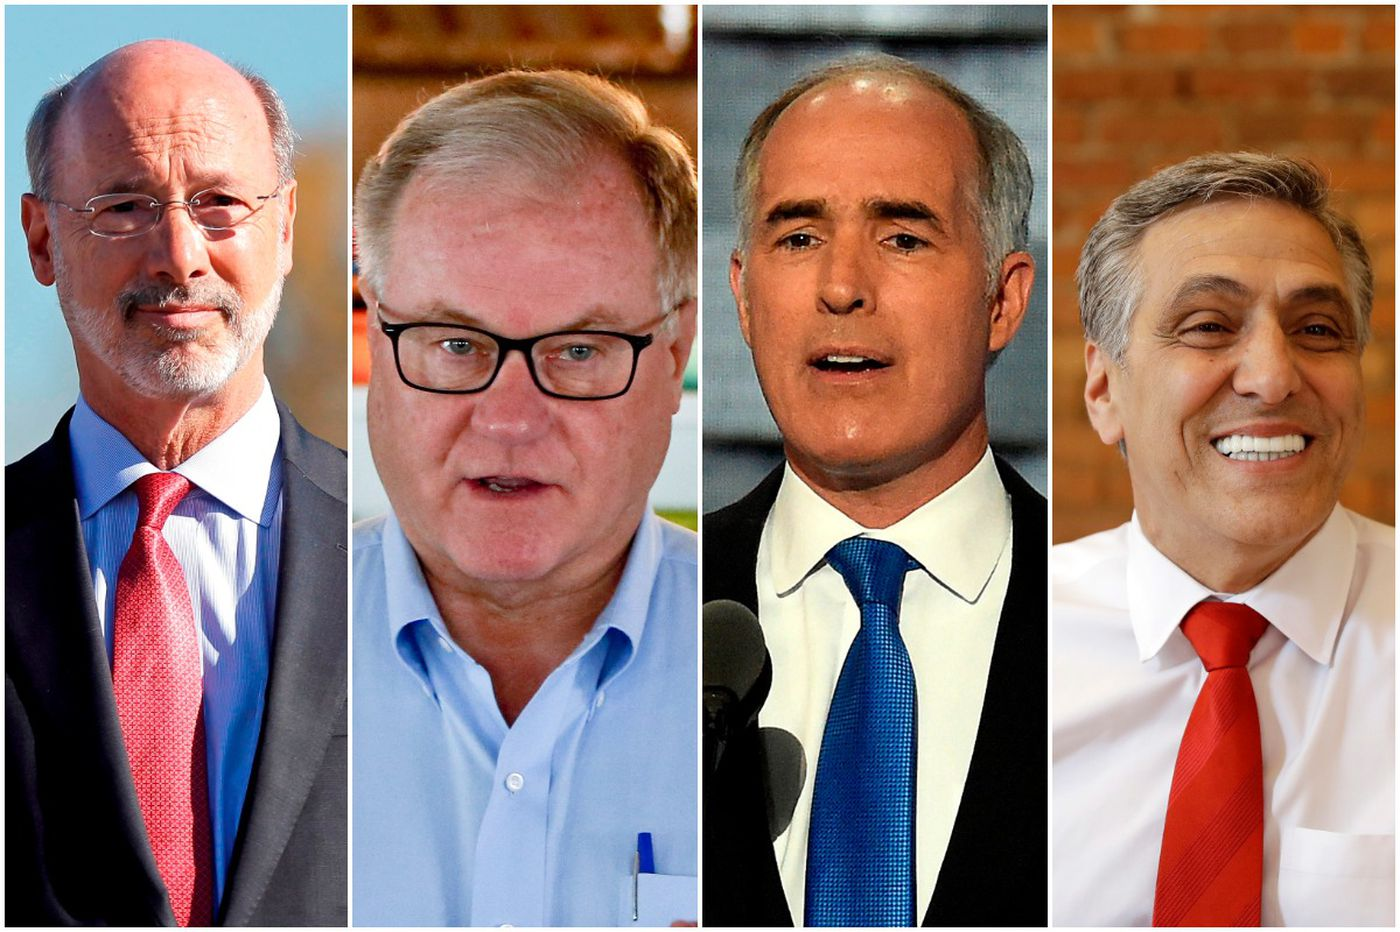 Pa. Poll: Wolf and Casey lead GOP candidates by double-digits